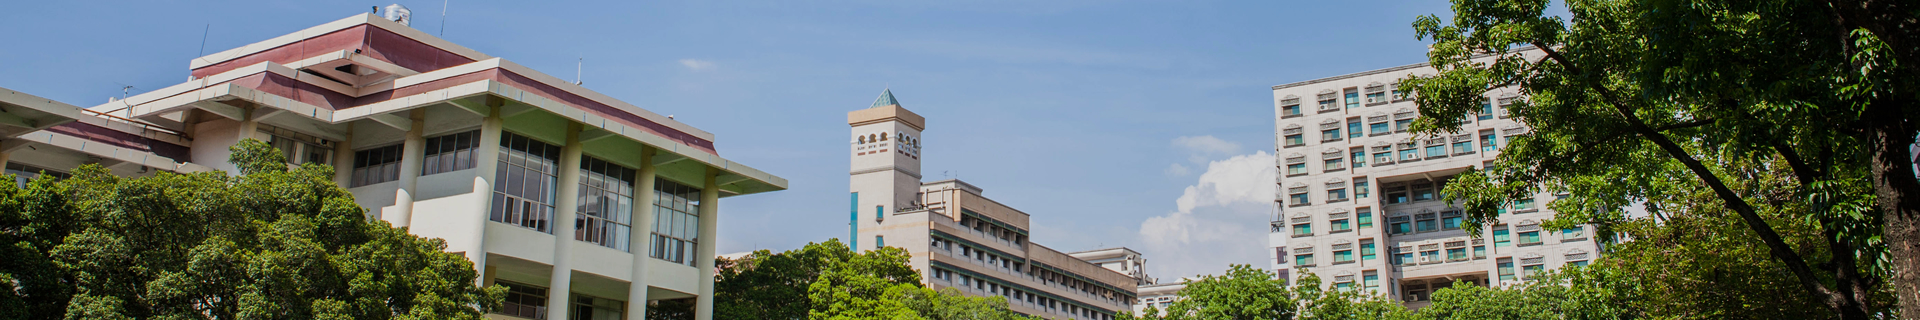 Center for Institutional Research